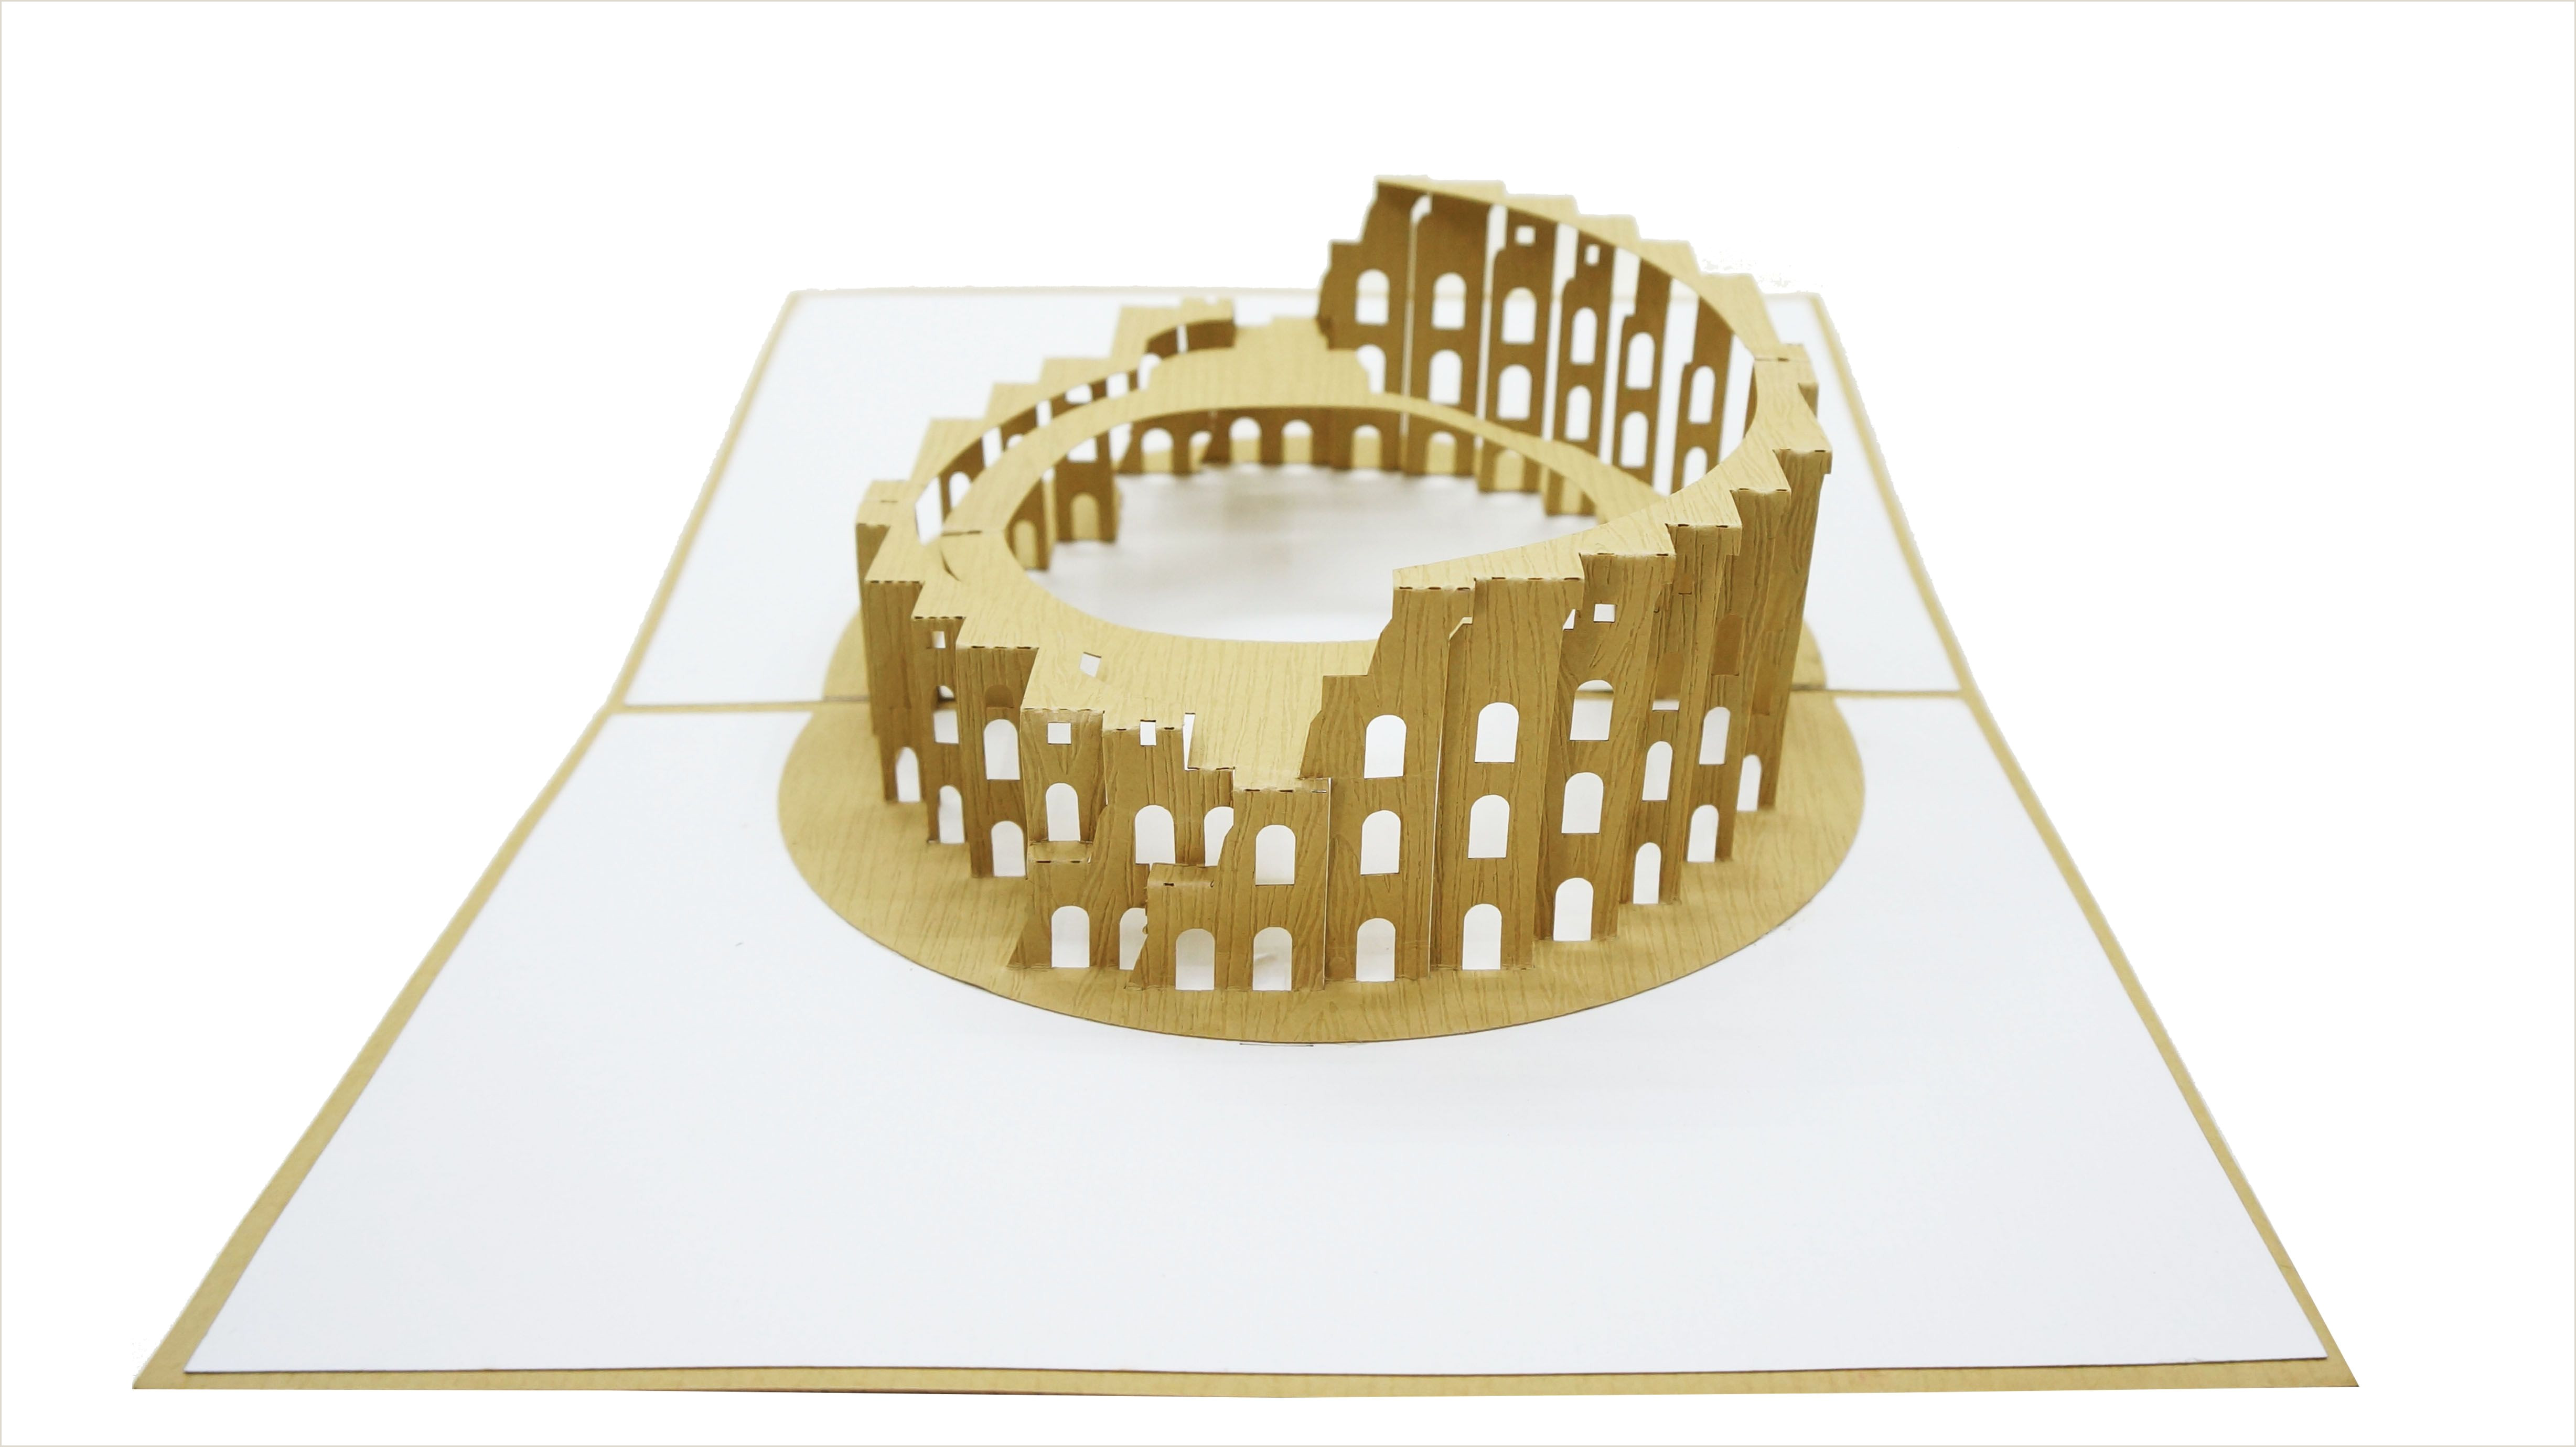 Kirigami Pop Up Cards Free Patterns Colosseum 3d Pop Up Card Architecture